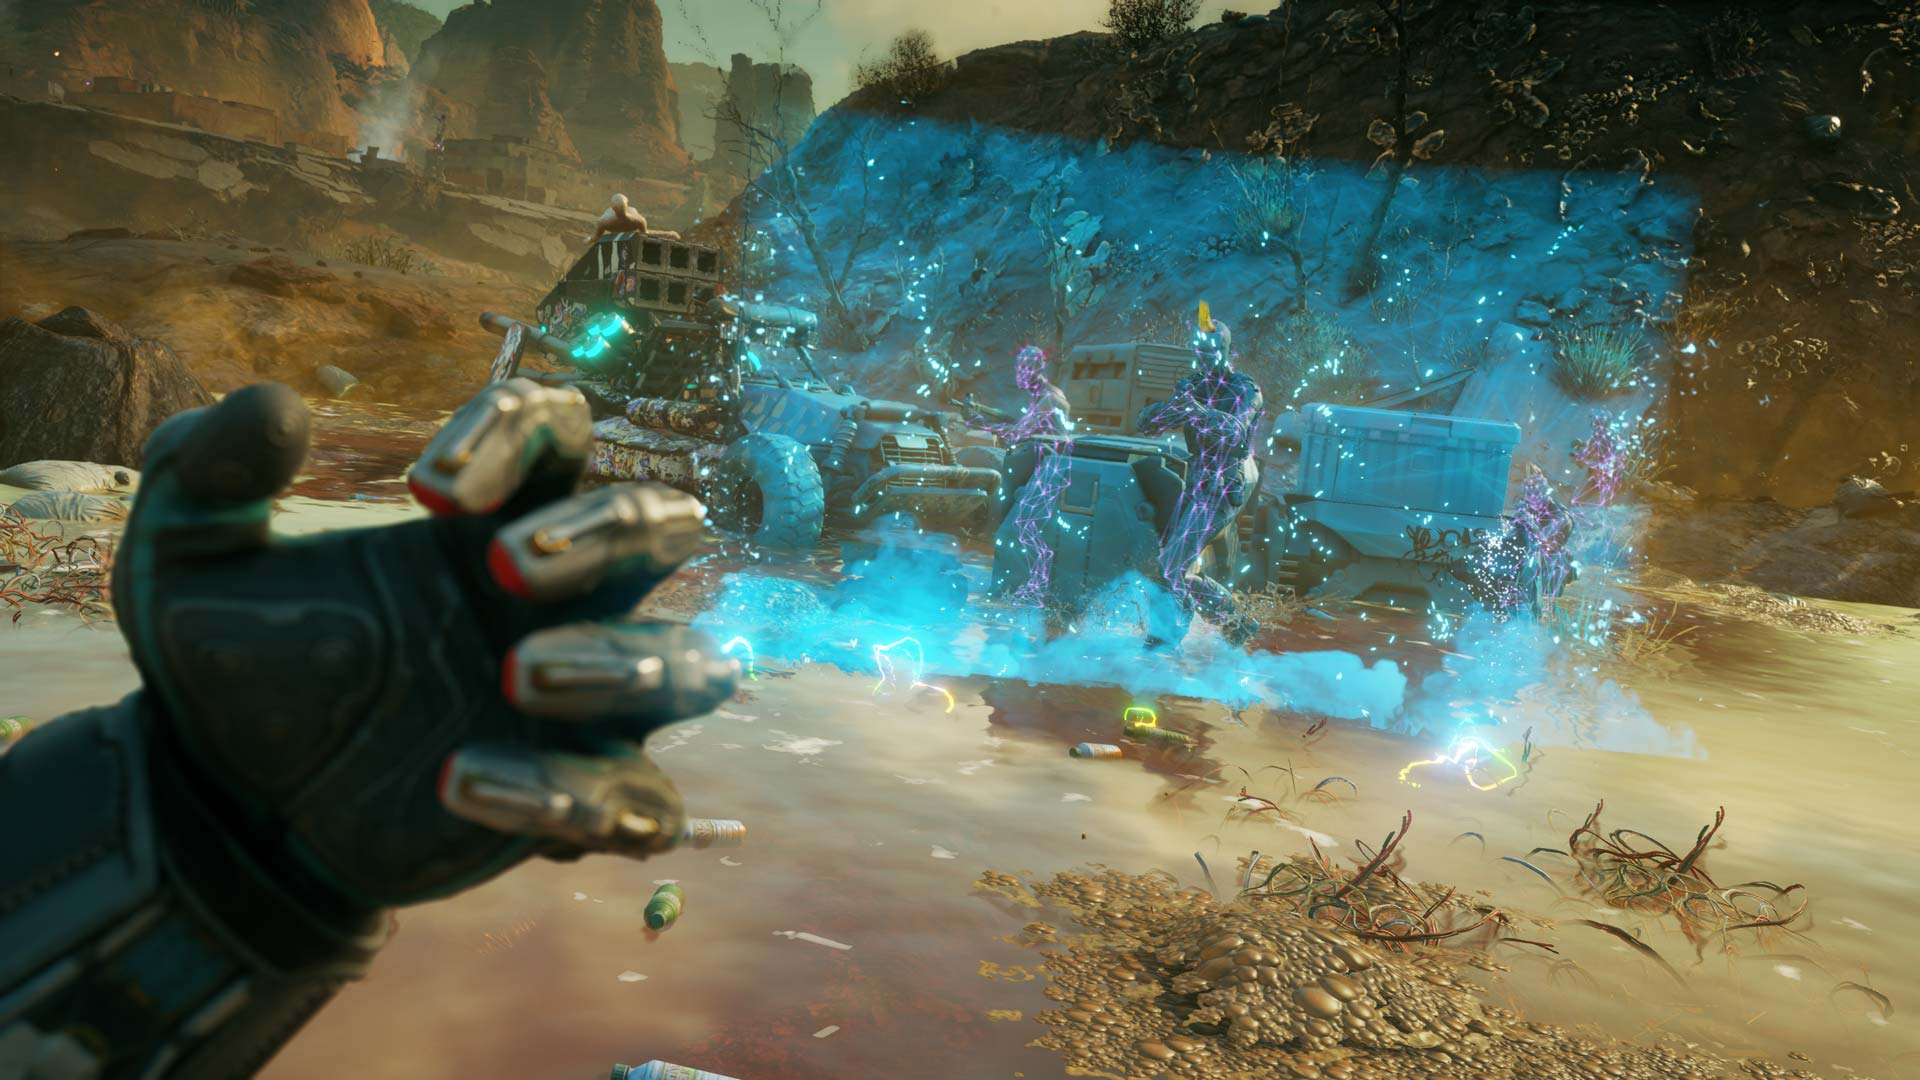 Nanotrite ability barrier in Rage 2